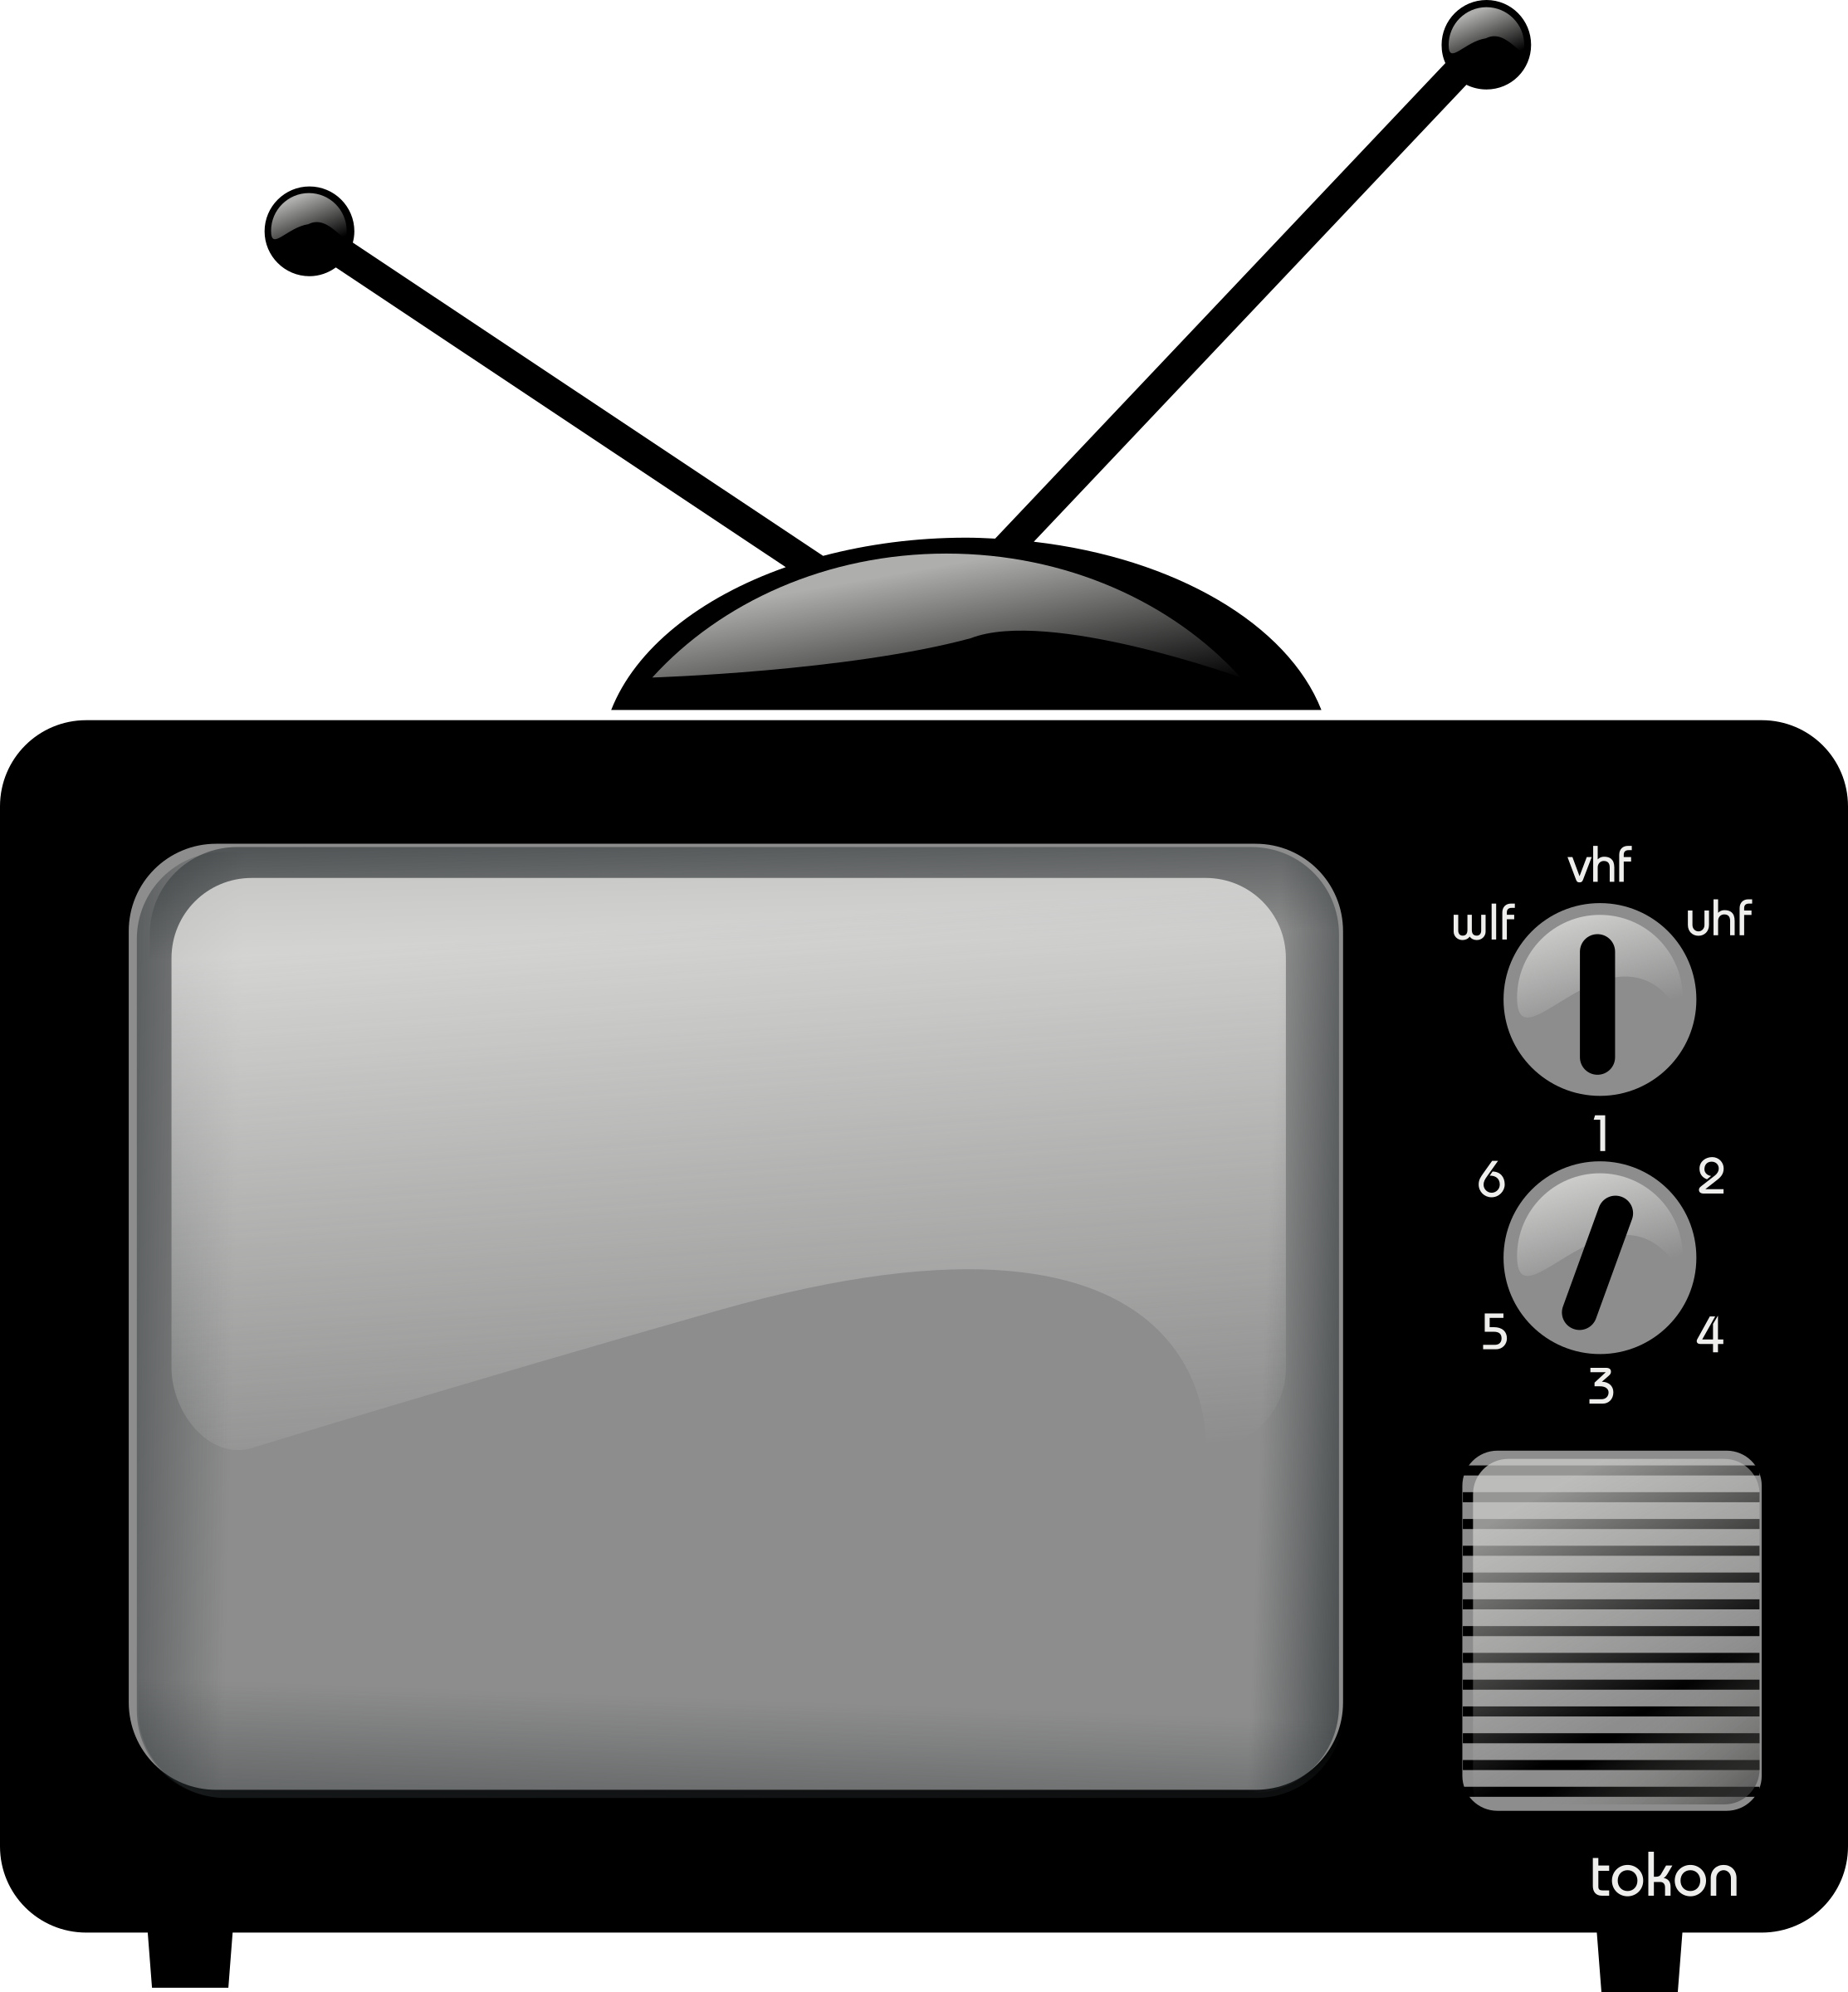 Clipart tv illustration. Old television big image